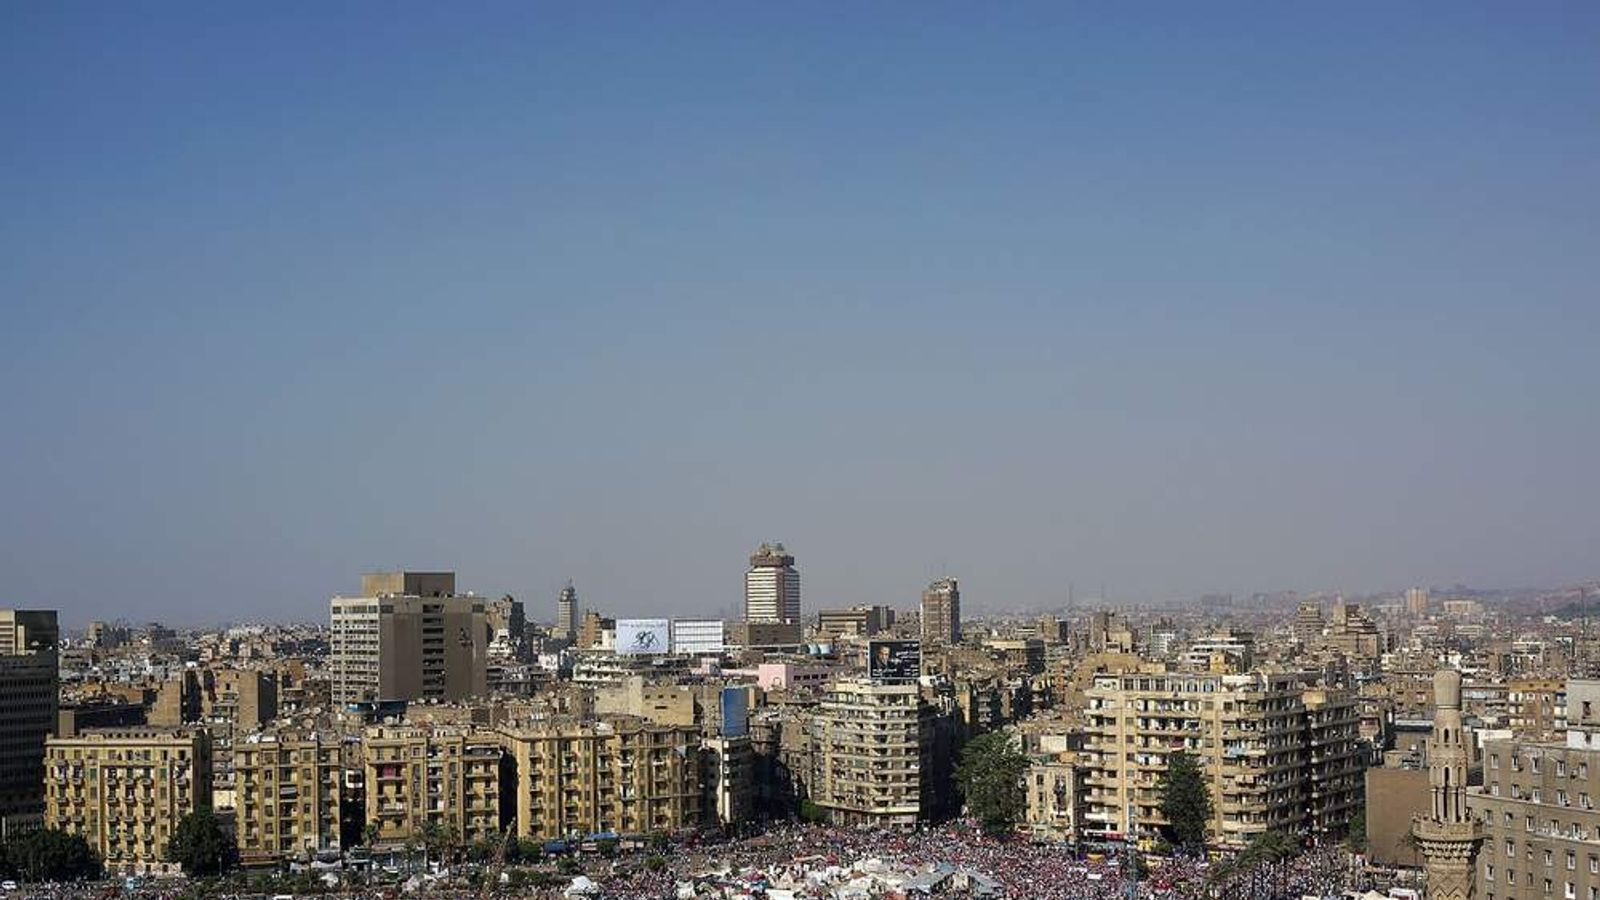 Egypt Protests Intensify As Army Deadline Approaches